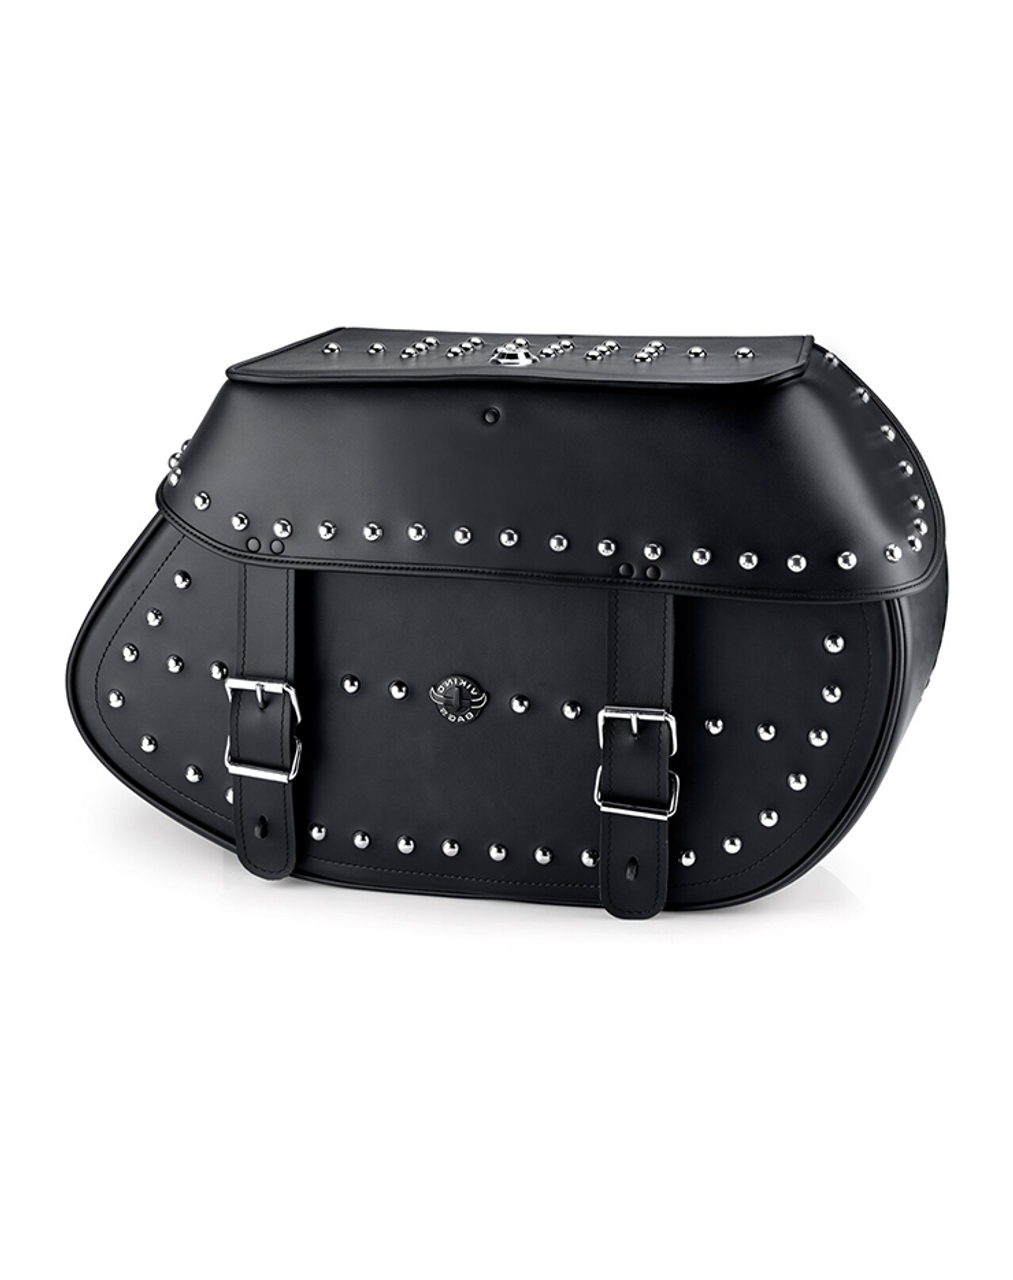 Viking Specific Studded Saddlebags For Harley Softail Street Bob Main View